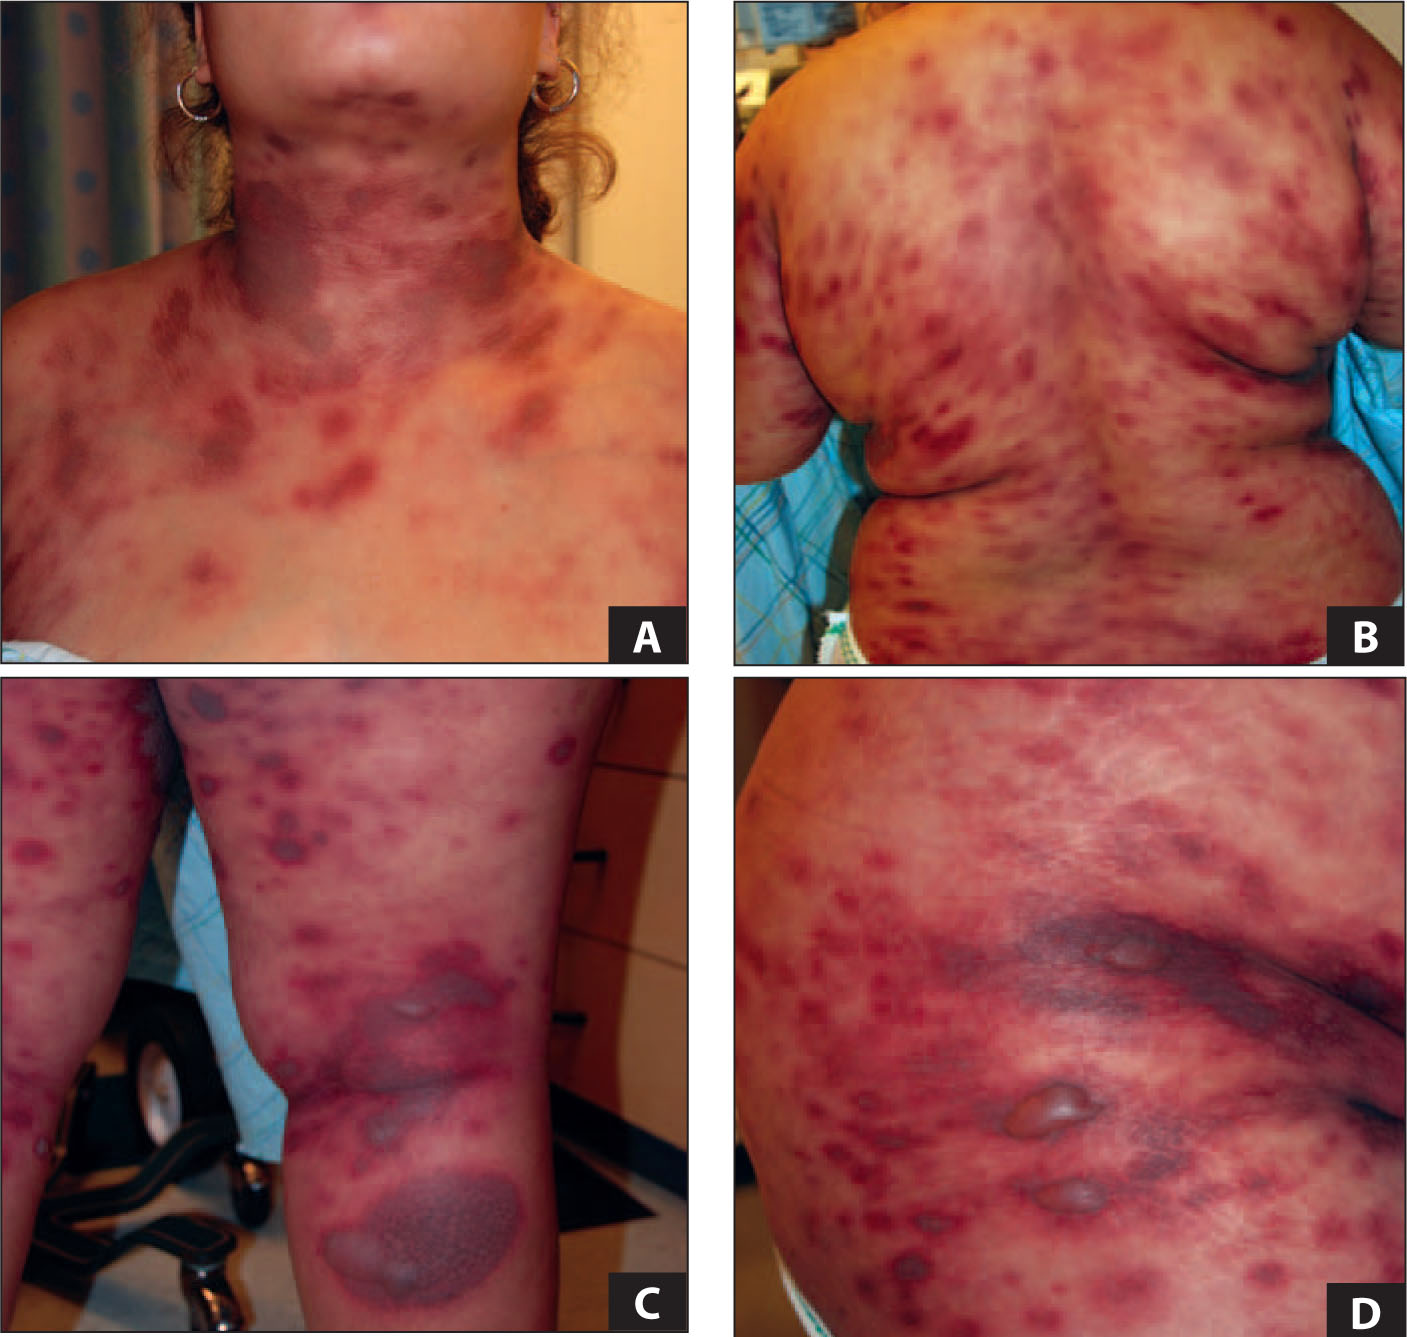 An 18-Year-Old Female Developed SJS/TEN During Treatment with TMP/Sulfa. Widespread Painful, Purpuric Patches Developed on the Trunk and Extremities. Soon After, Bullae Developed from Necrosis and Skin Detachment, and Ulceration. She Responded Well to Discontinuation of TMP/sulfa, Early Short Course with Oral Prednisone, and Subsequent IVIG. Images Courtesy of Mary Wu Chang, MD.